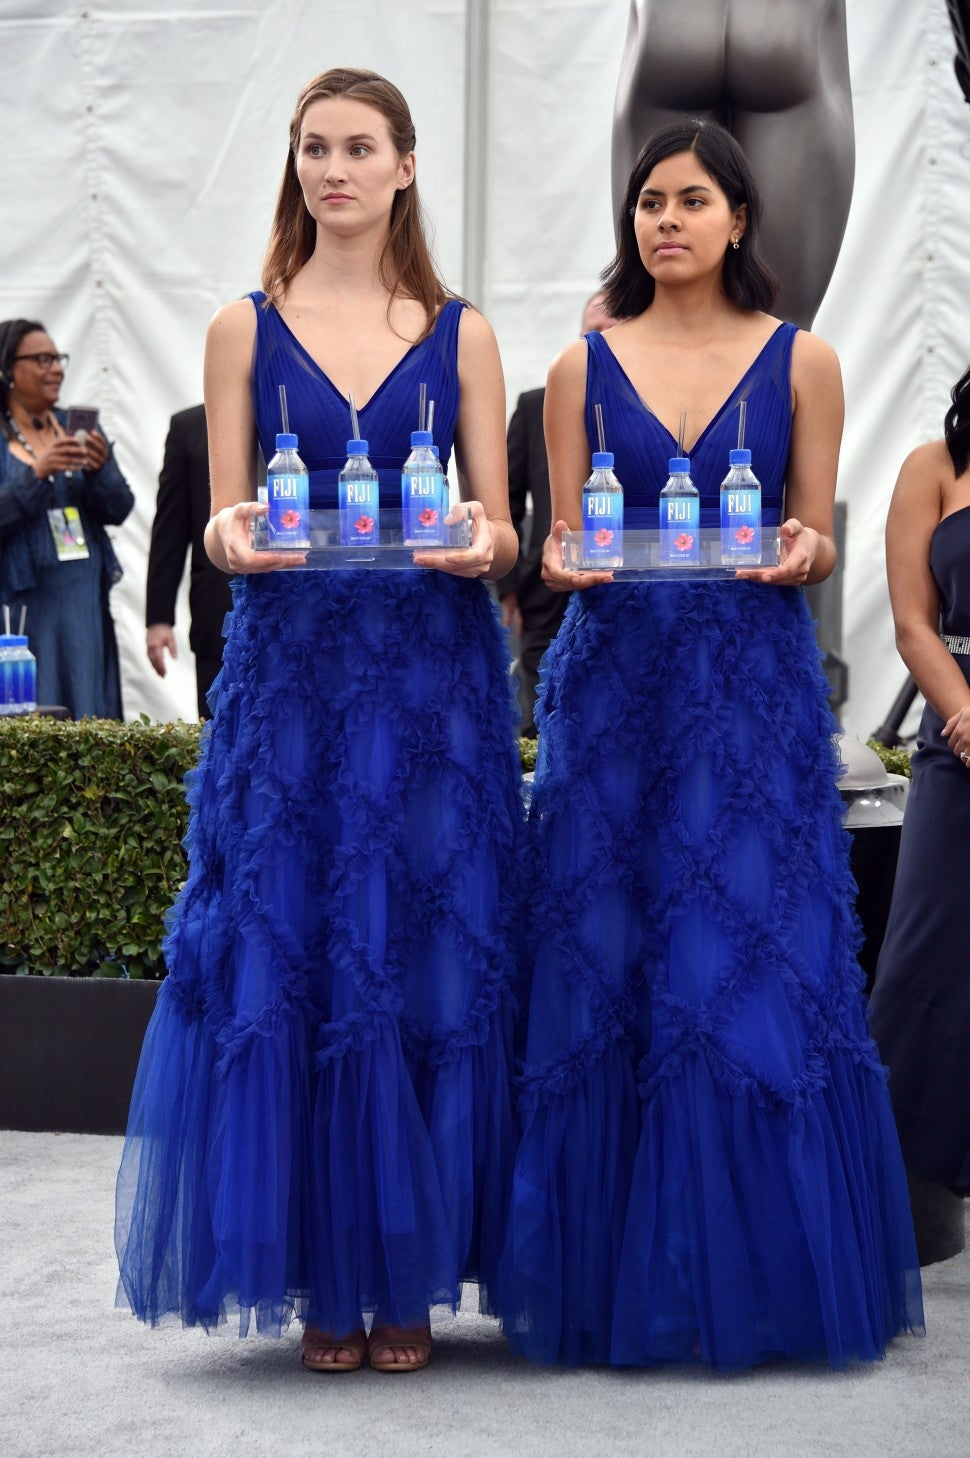 2020 SAG Awards, Fiji Water Girls